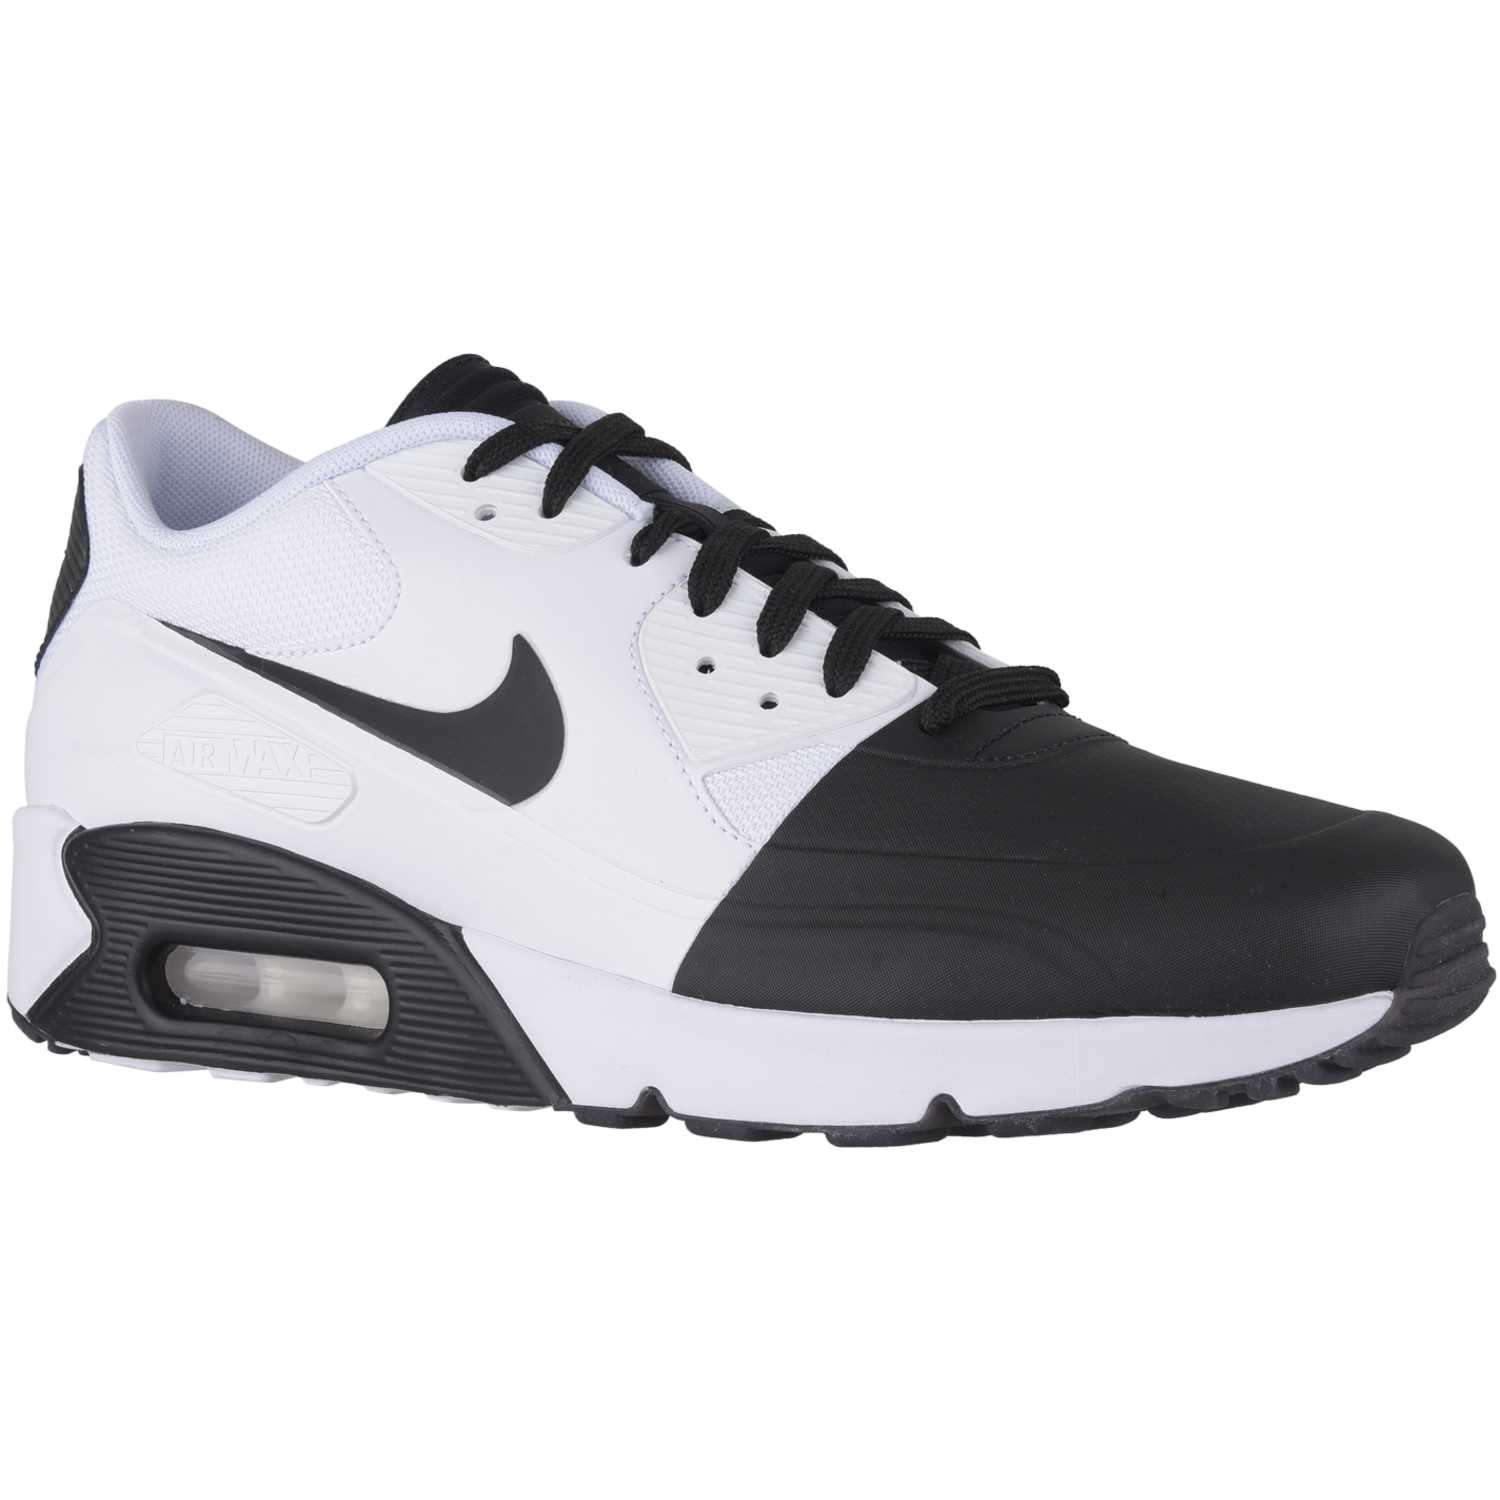 low priced 4629b 61002 Zapatilla de Hombre Nike Blanco / Negro air max 90 ultra 2.0 se ...